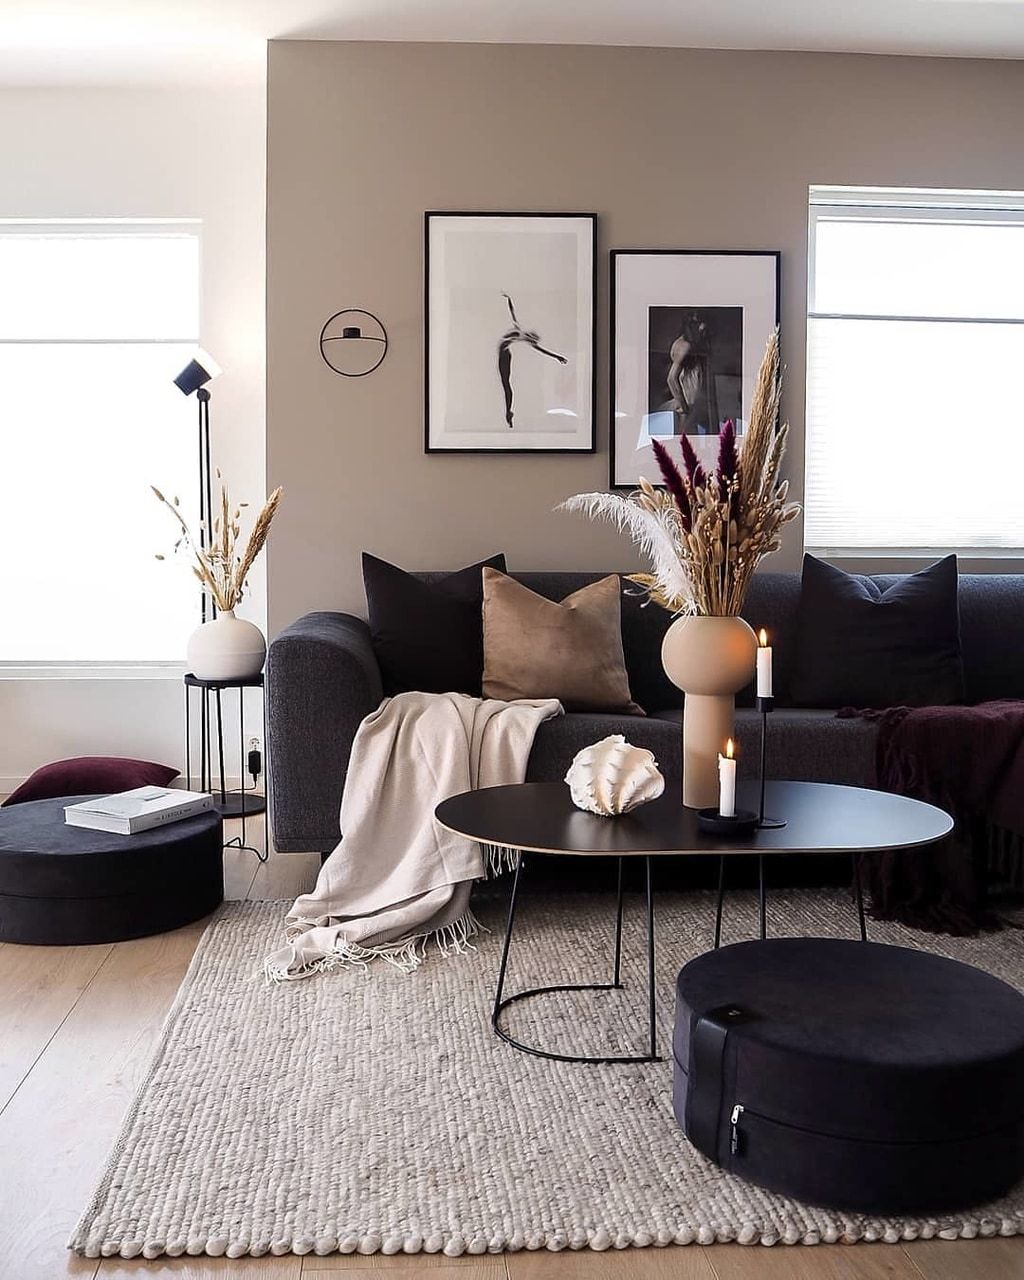 Discovered By Sofia Find Images And Videos About Black Goals And Home On We Heart It Th Living Room Decor Cozy Living Room Decor Apartment Home Room Design Living room decor black